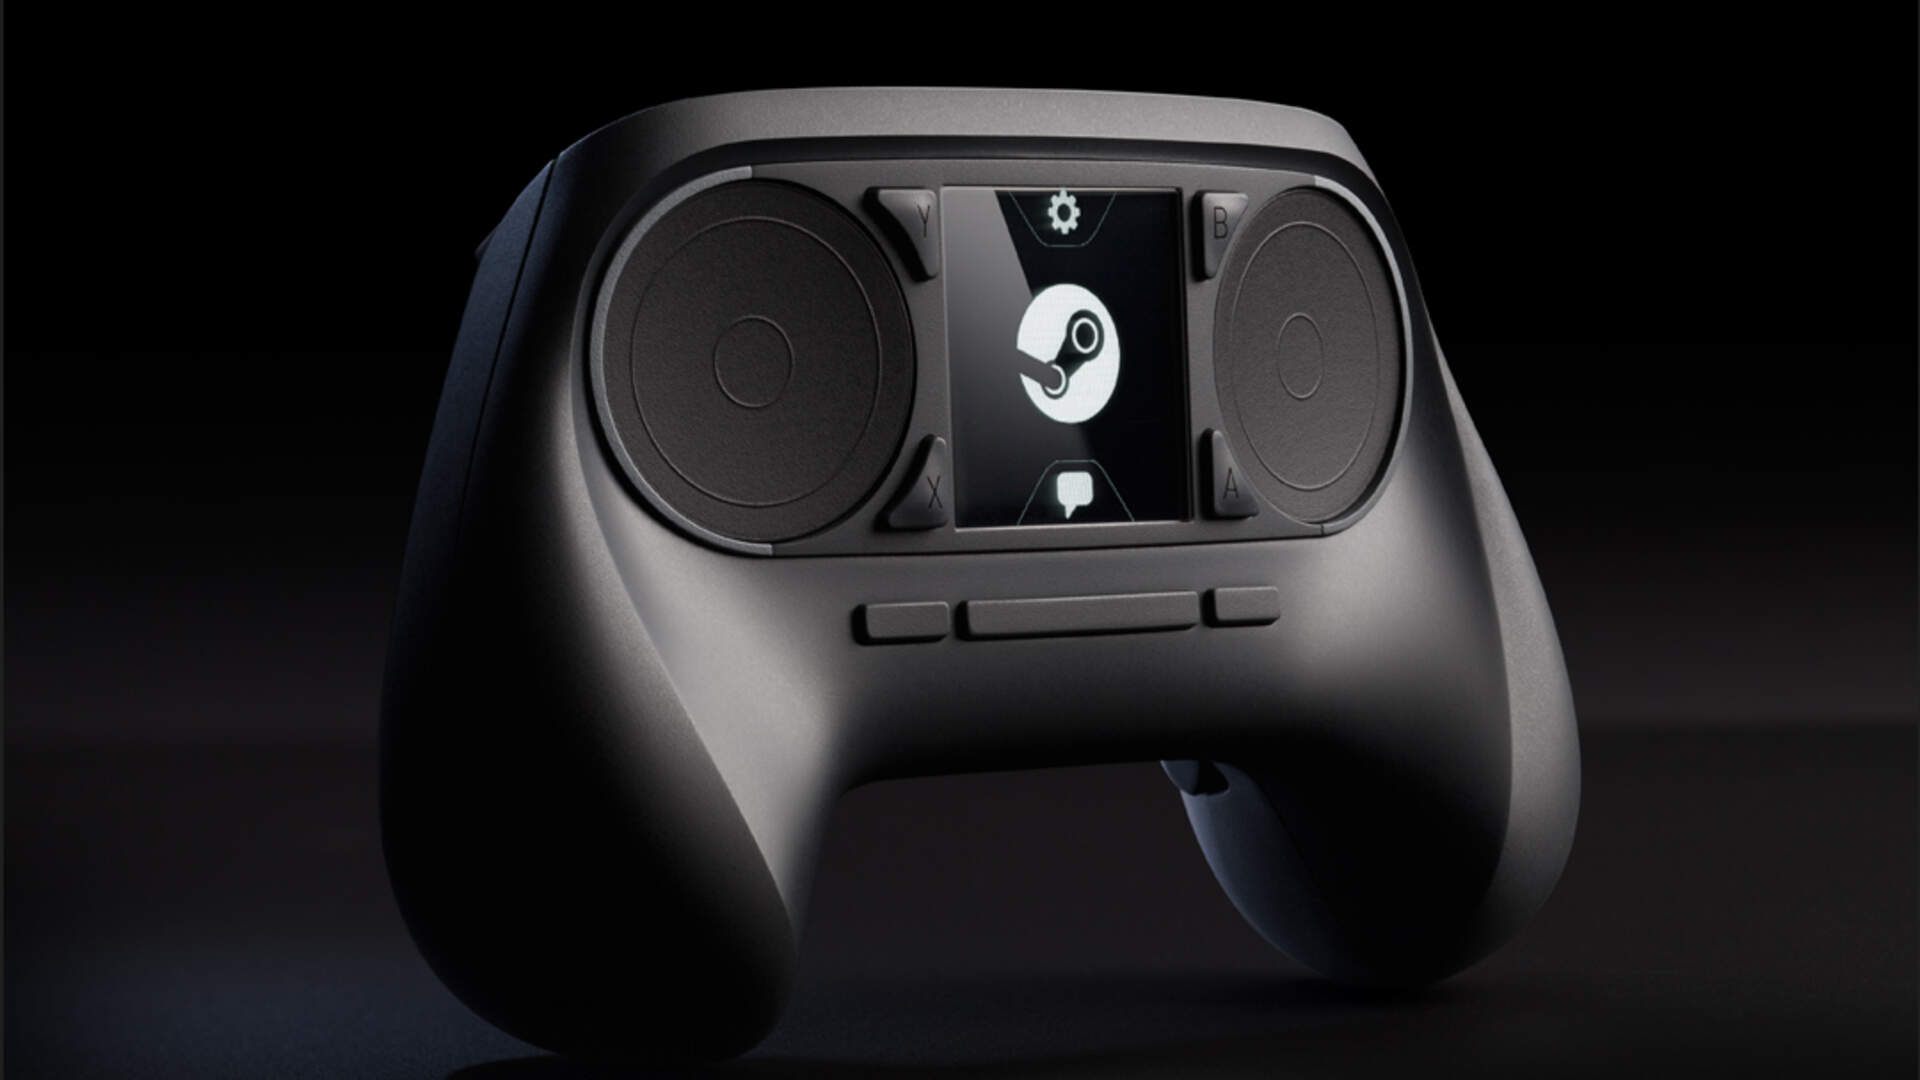 Steam Reveals Most Popular Controllers: Xbox 360 Controller Reigns, but There are a Lot of Surprises